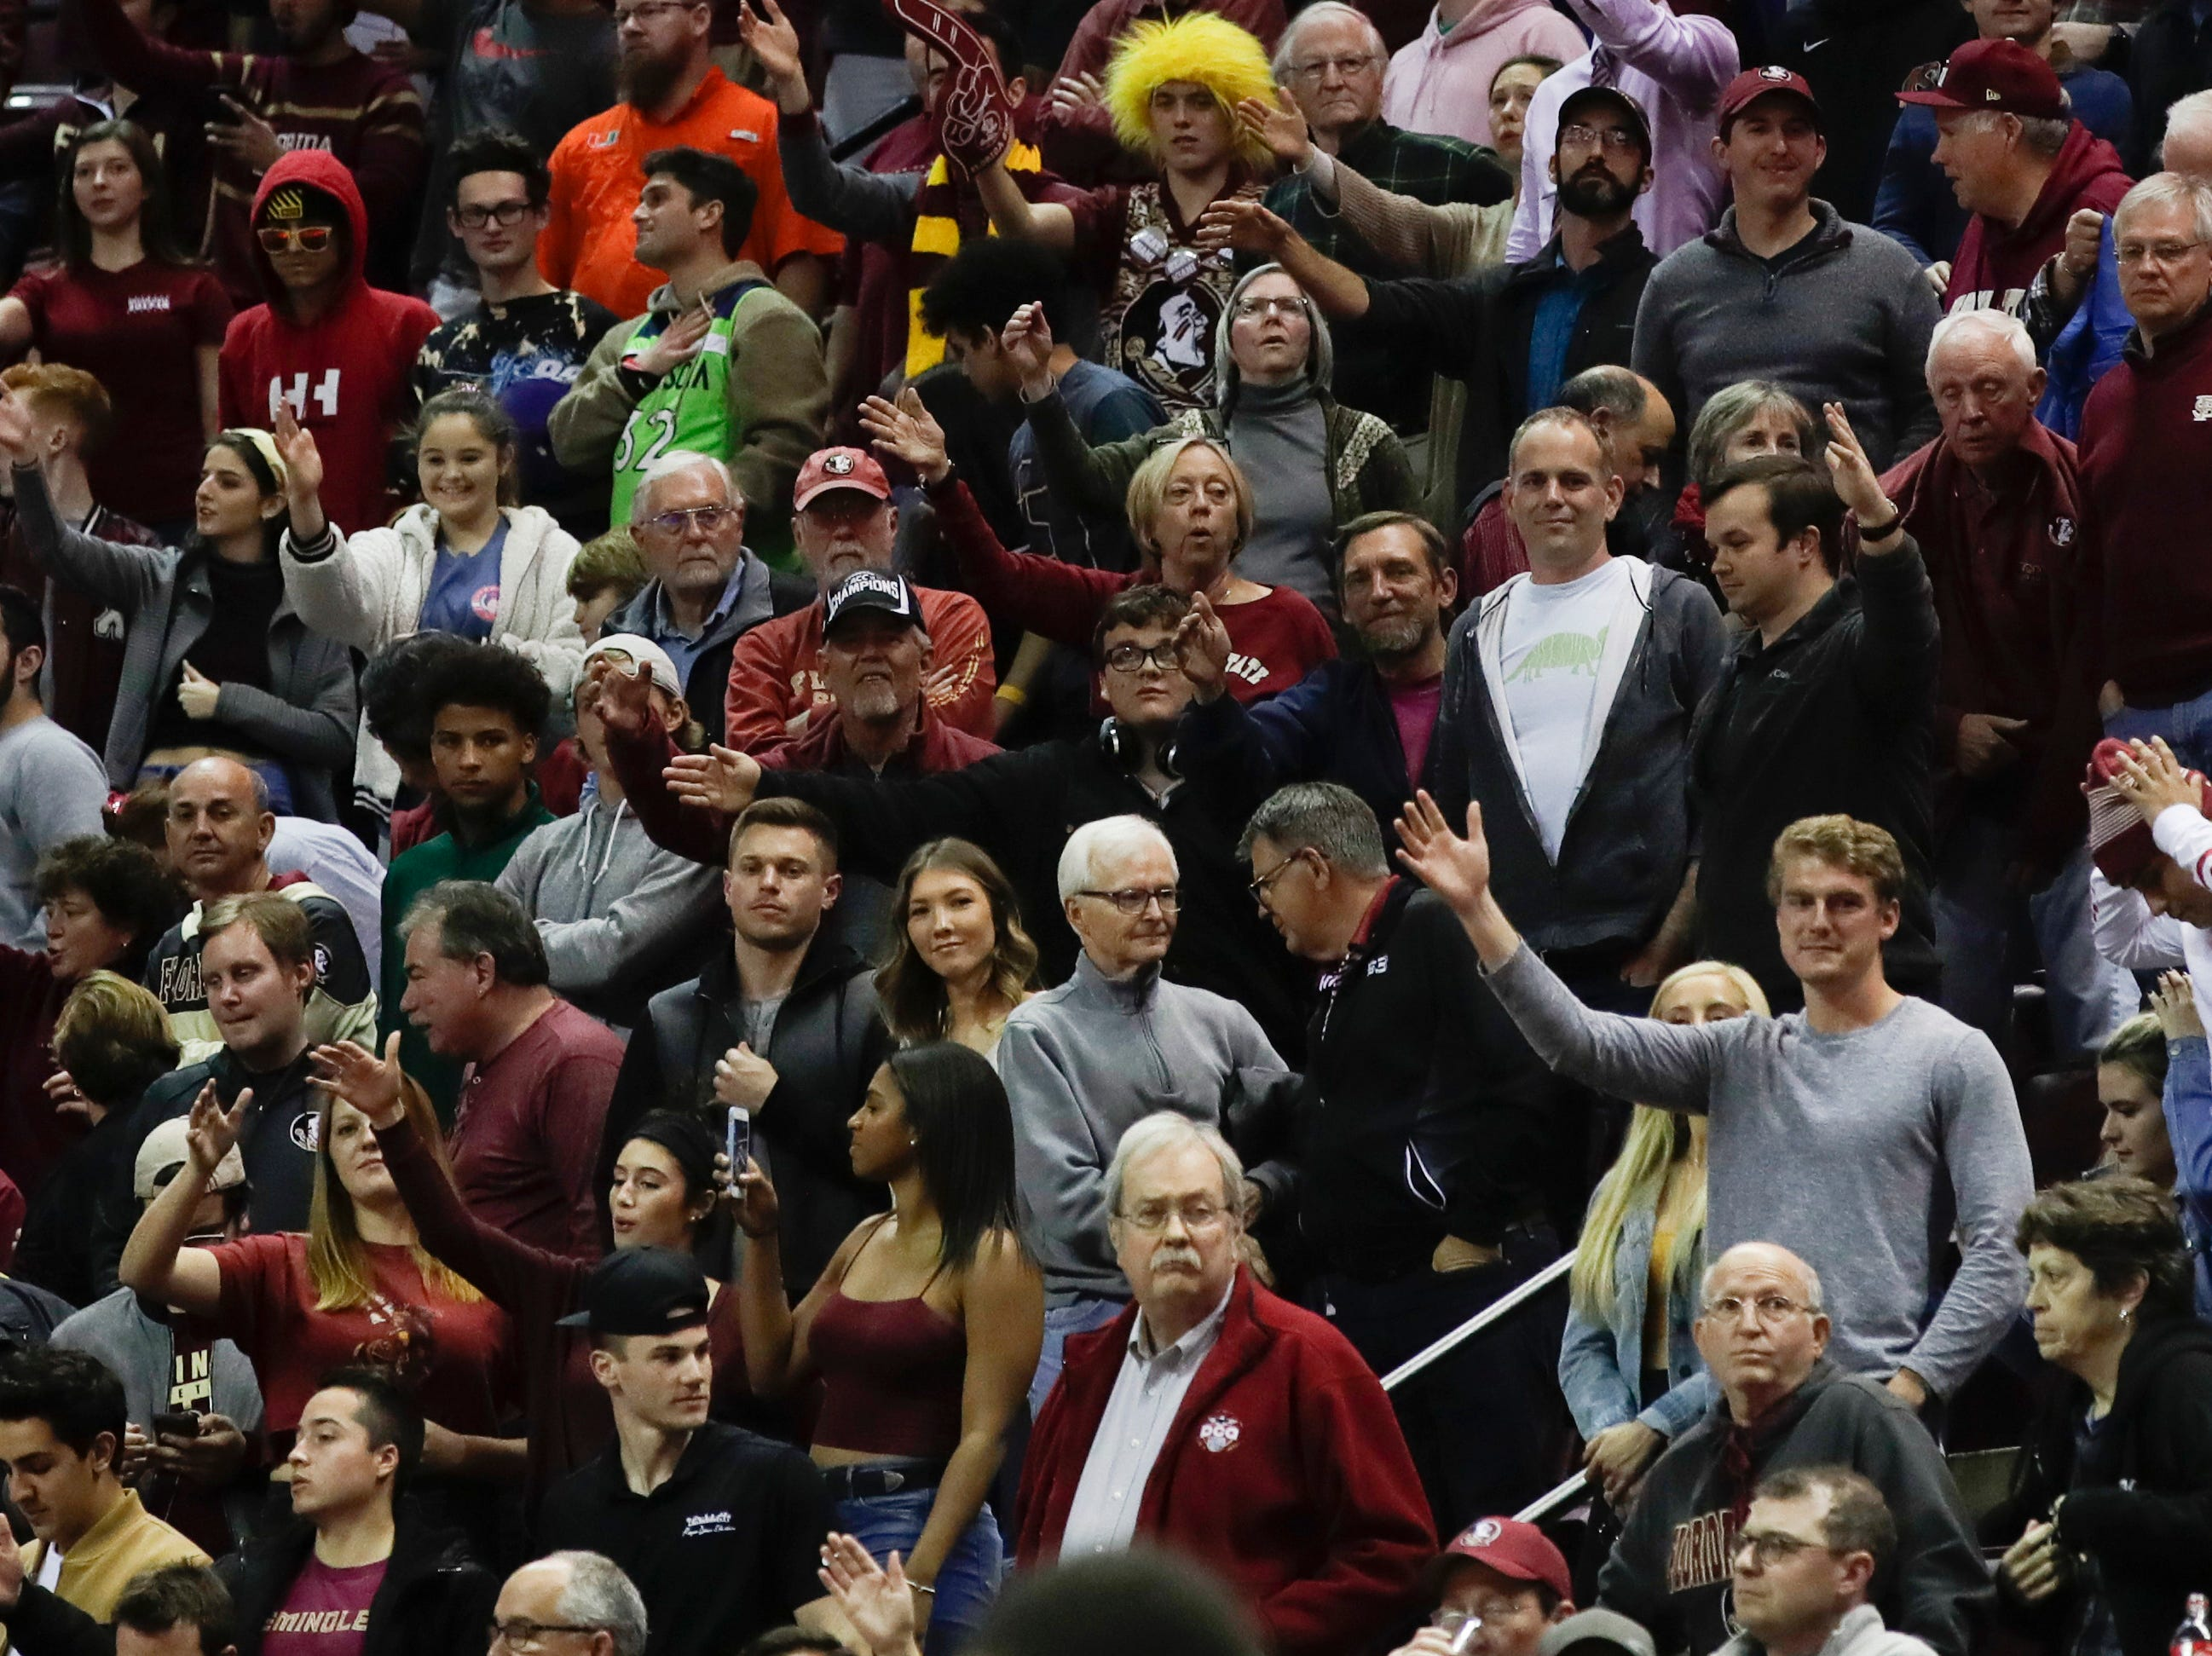 The crowd does the chop during a game between FSU and University of Miami Wednesday, Jan. 9, 2019.